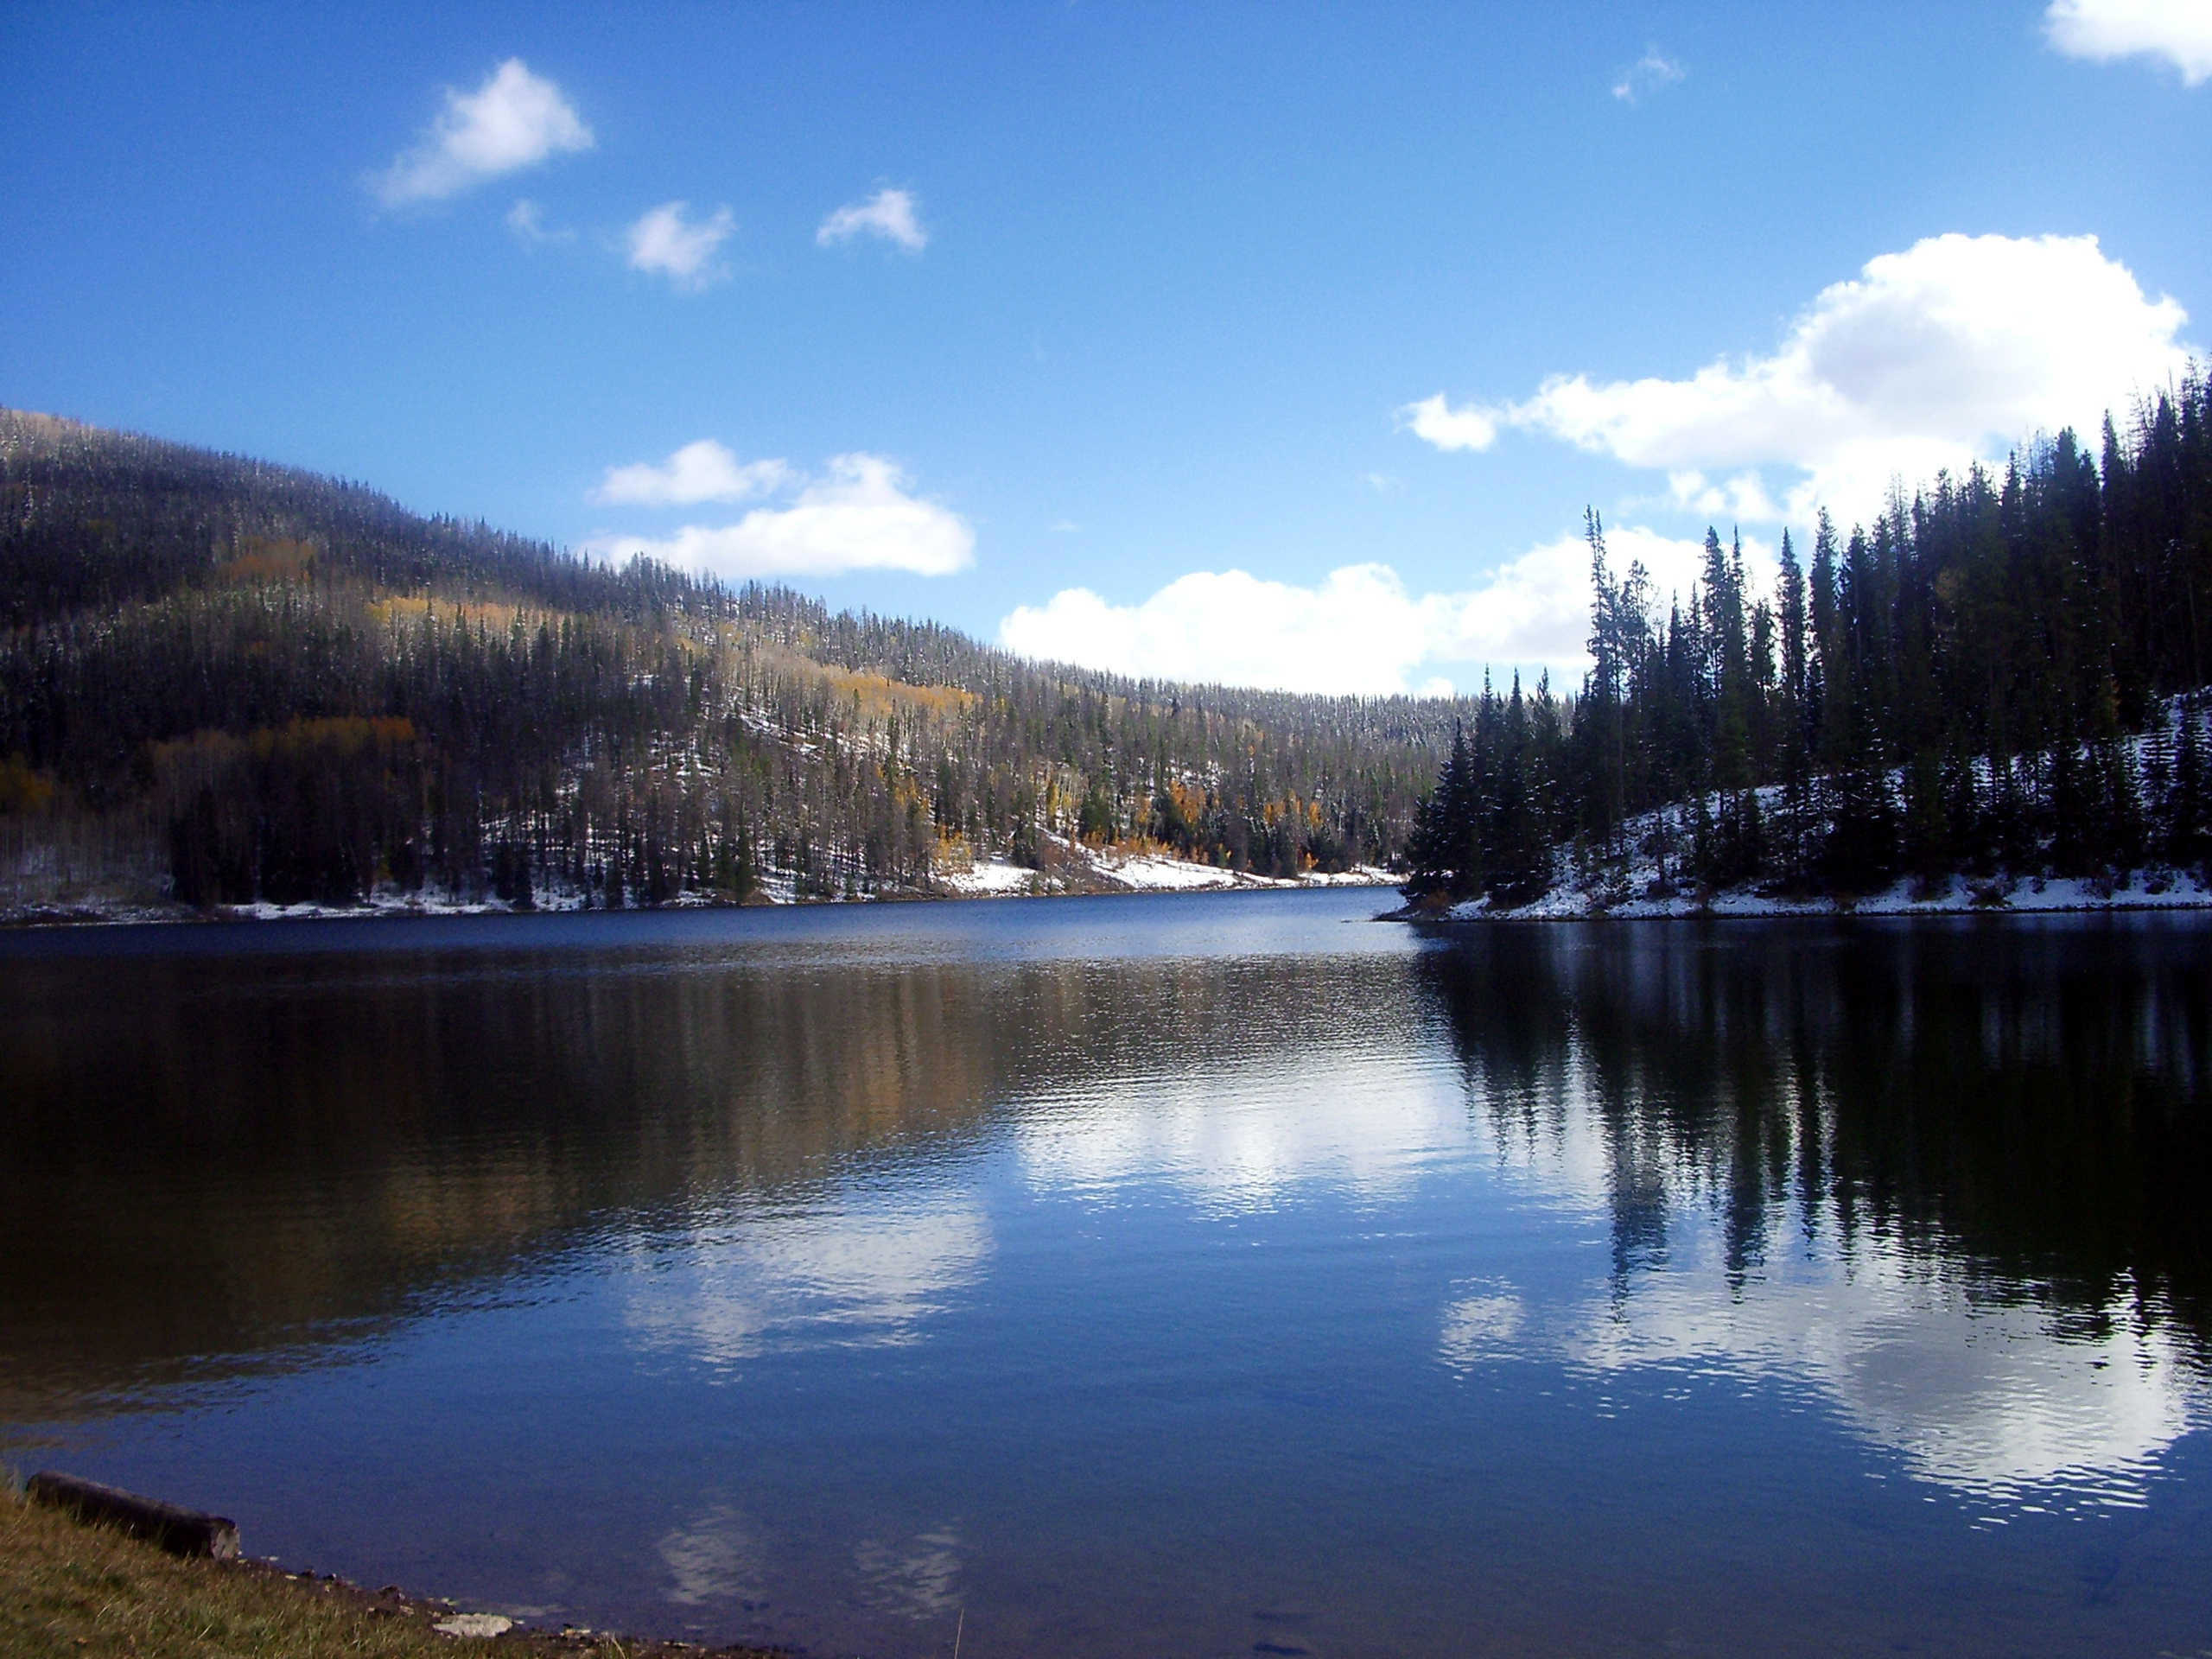 Colorado mountain lake fishing pictures to pin on for Fishing lakes in colorado springs